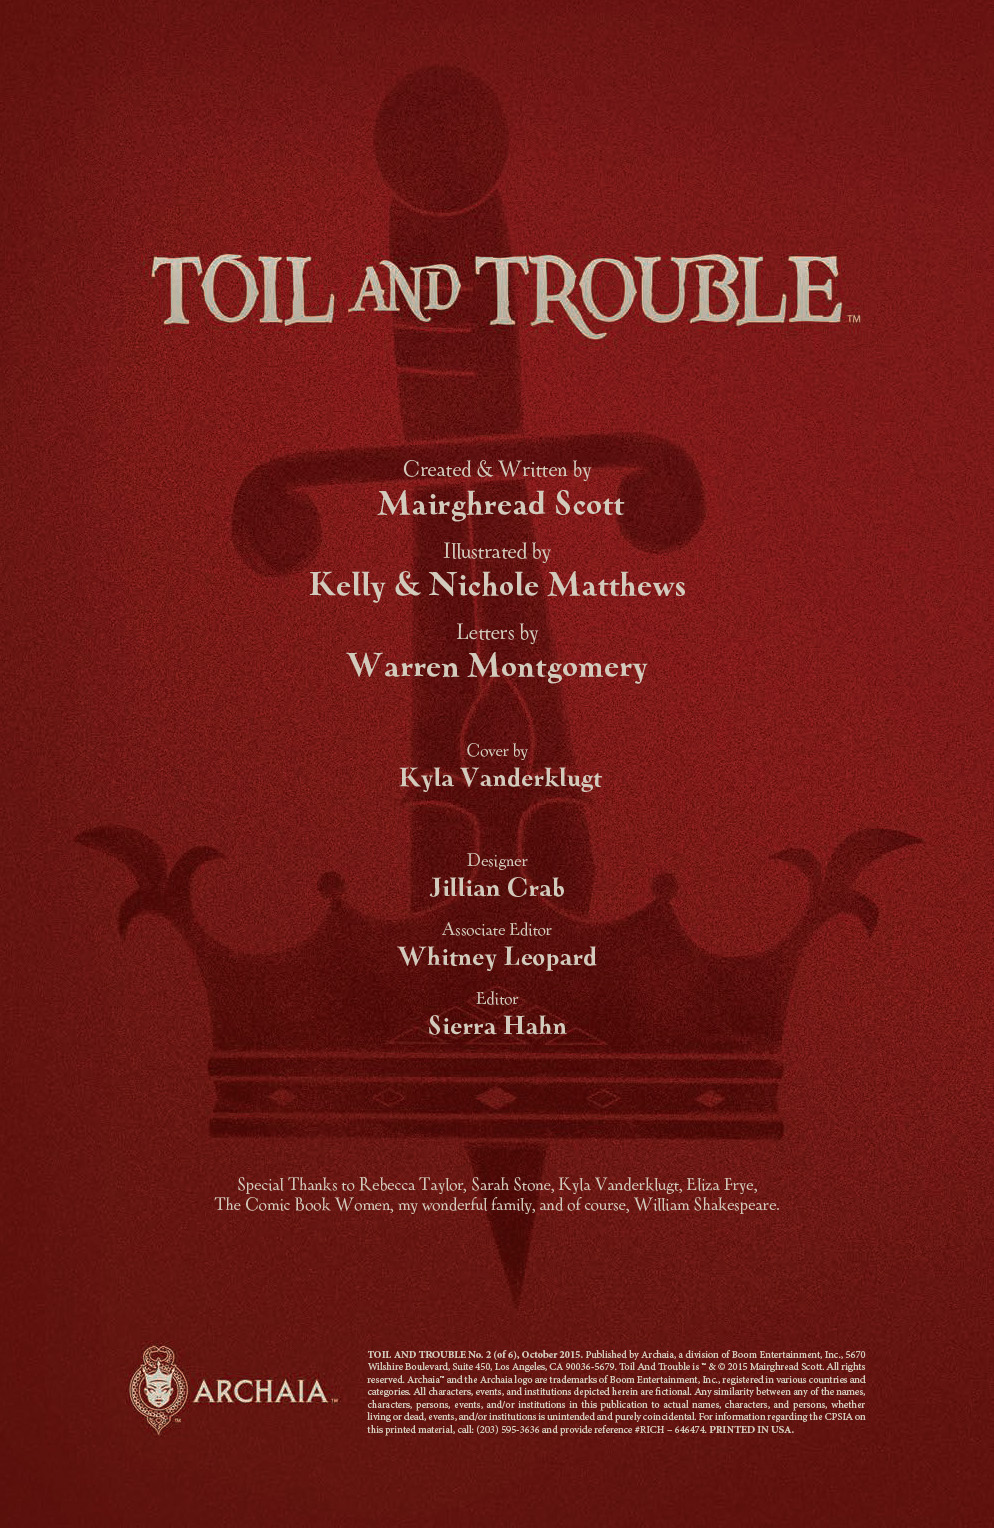 Toil and Trouble Issue 2 Credits